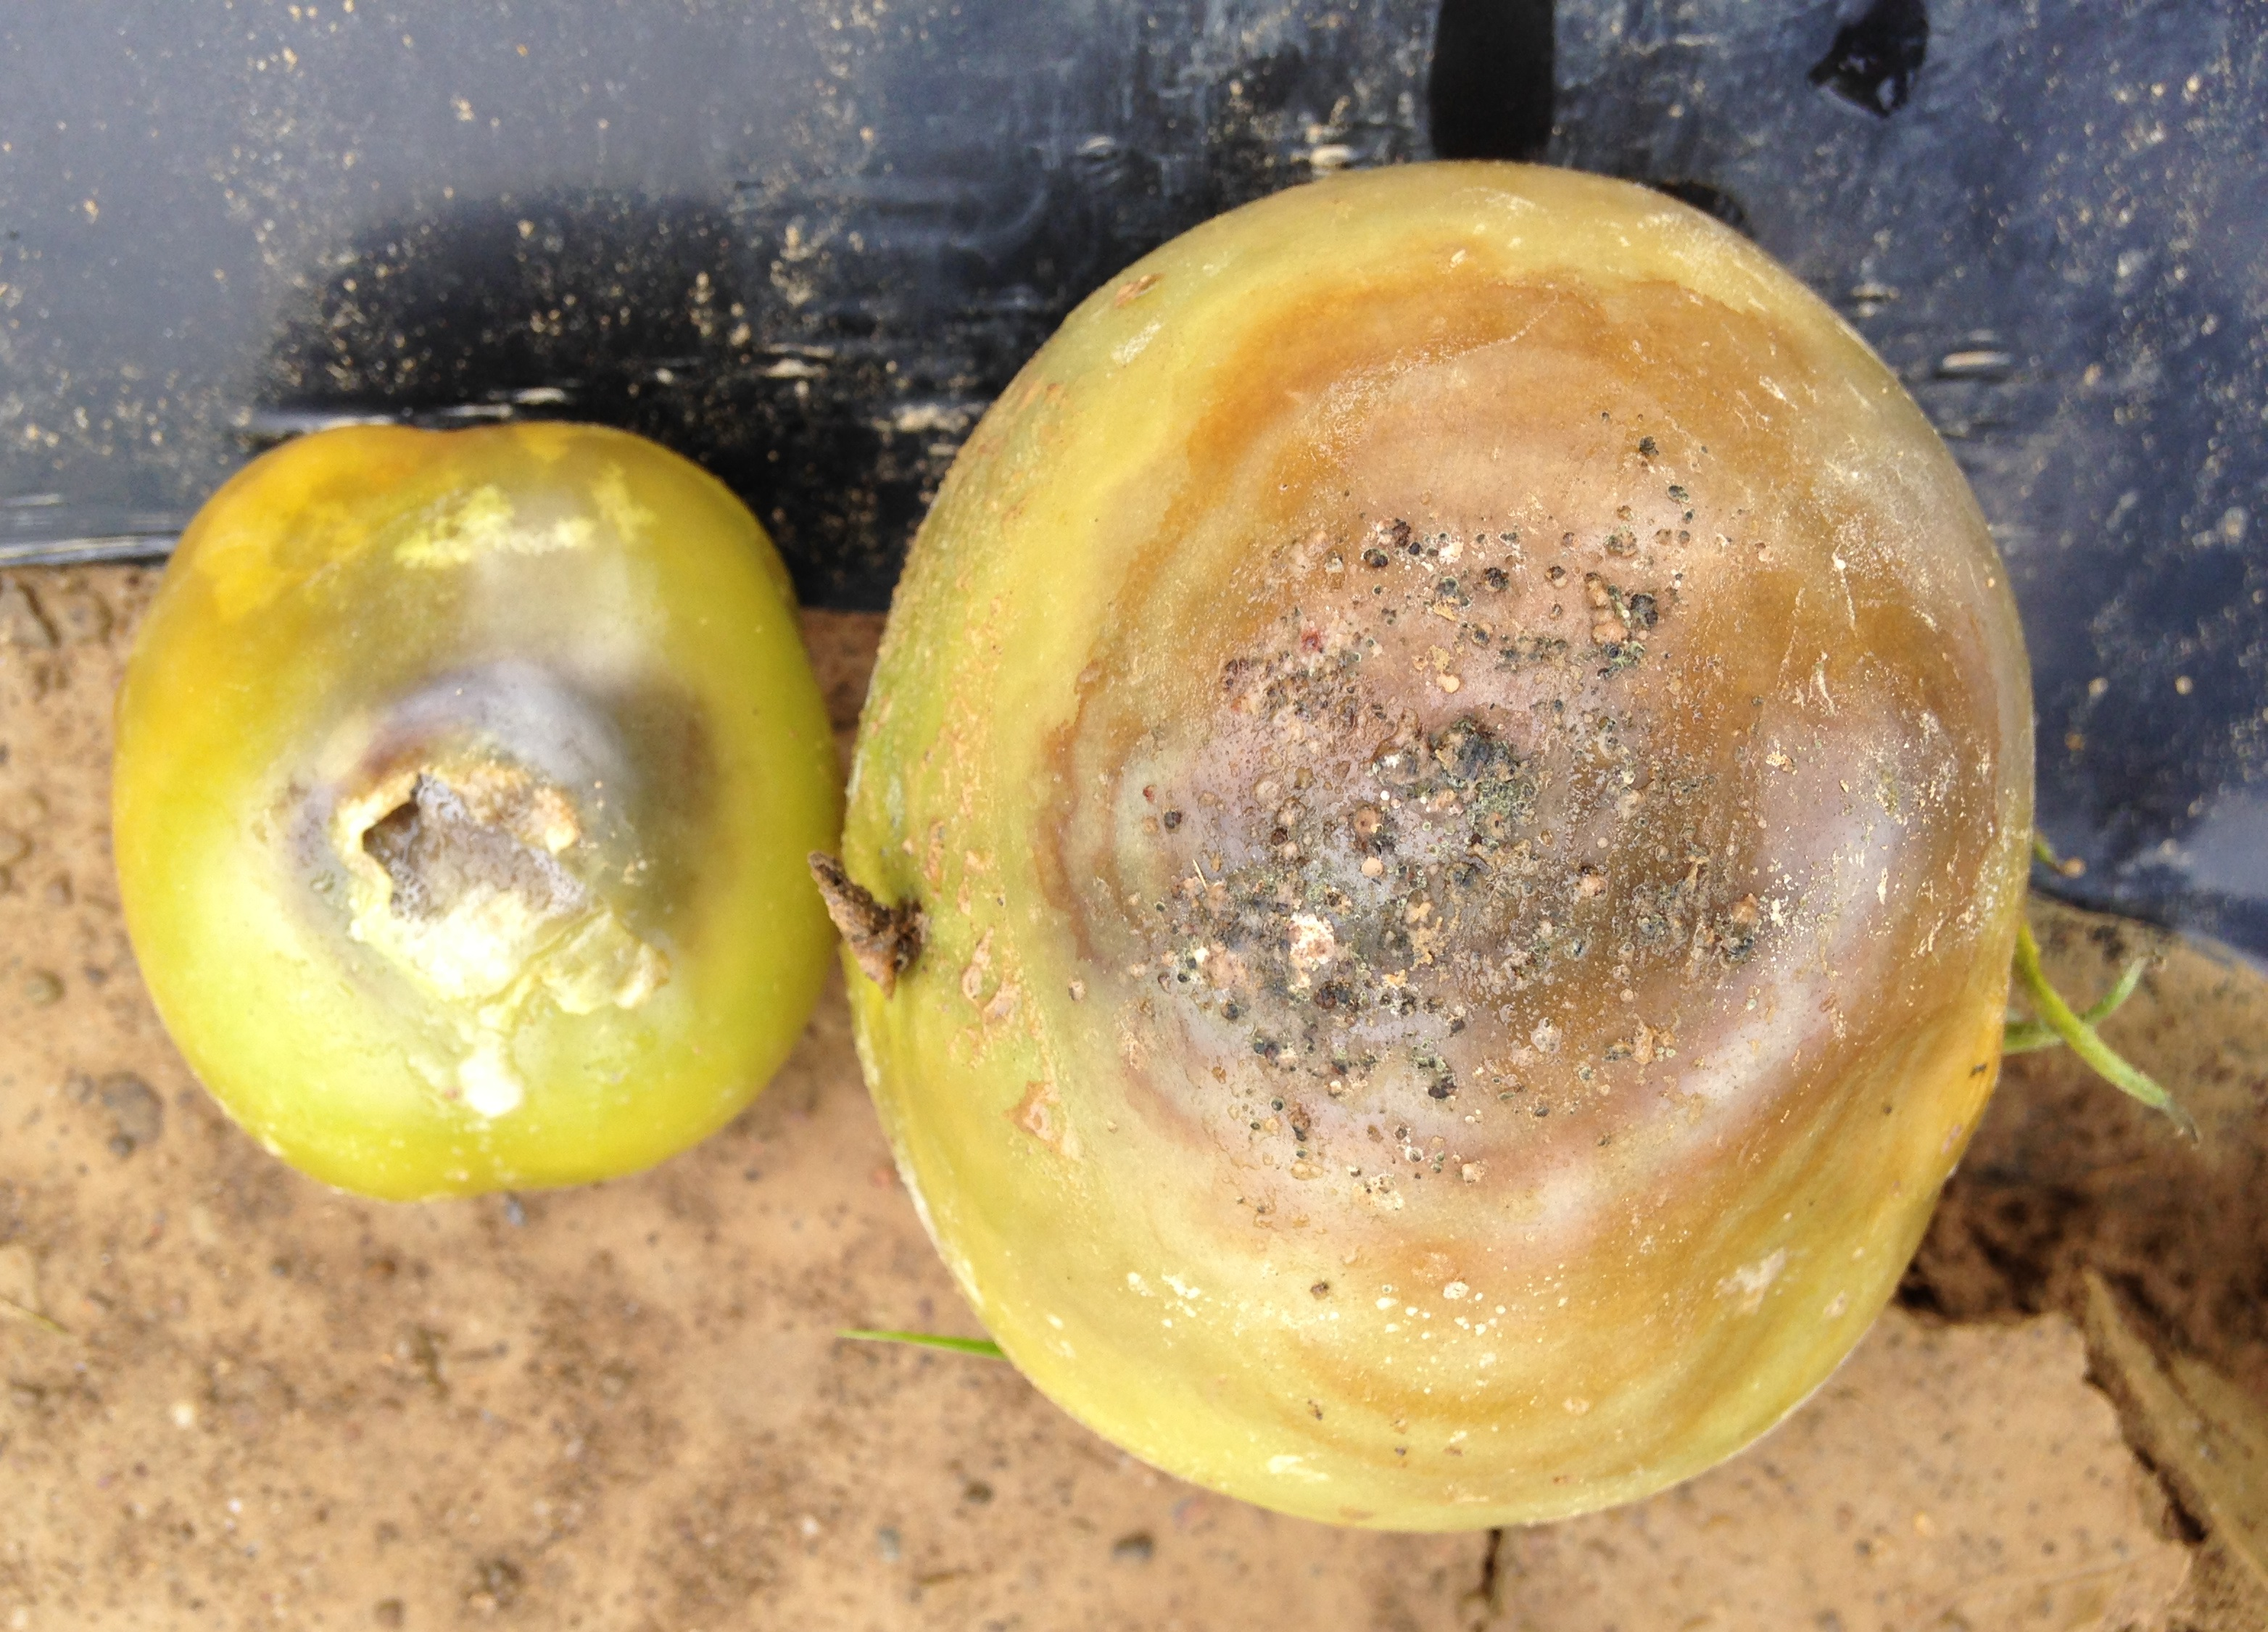 Diseases Found In Tomato Plants | Wayne County Integrated ...